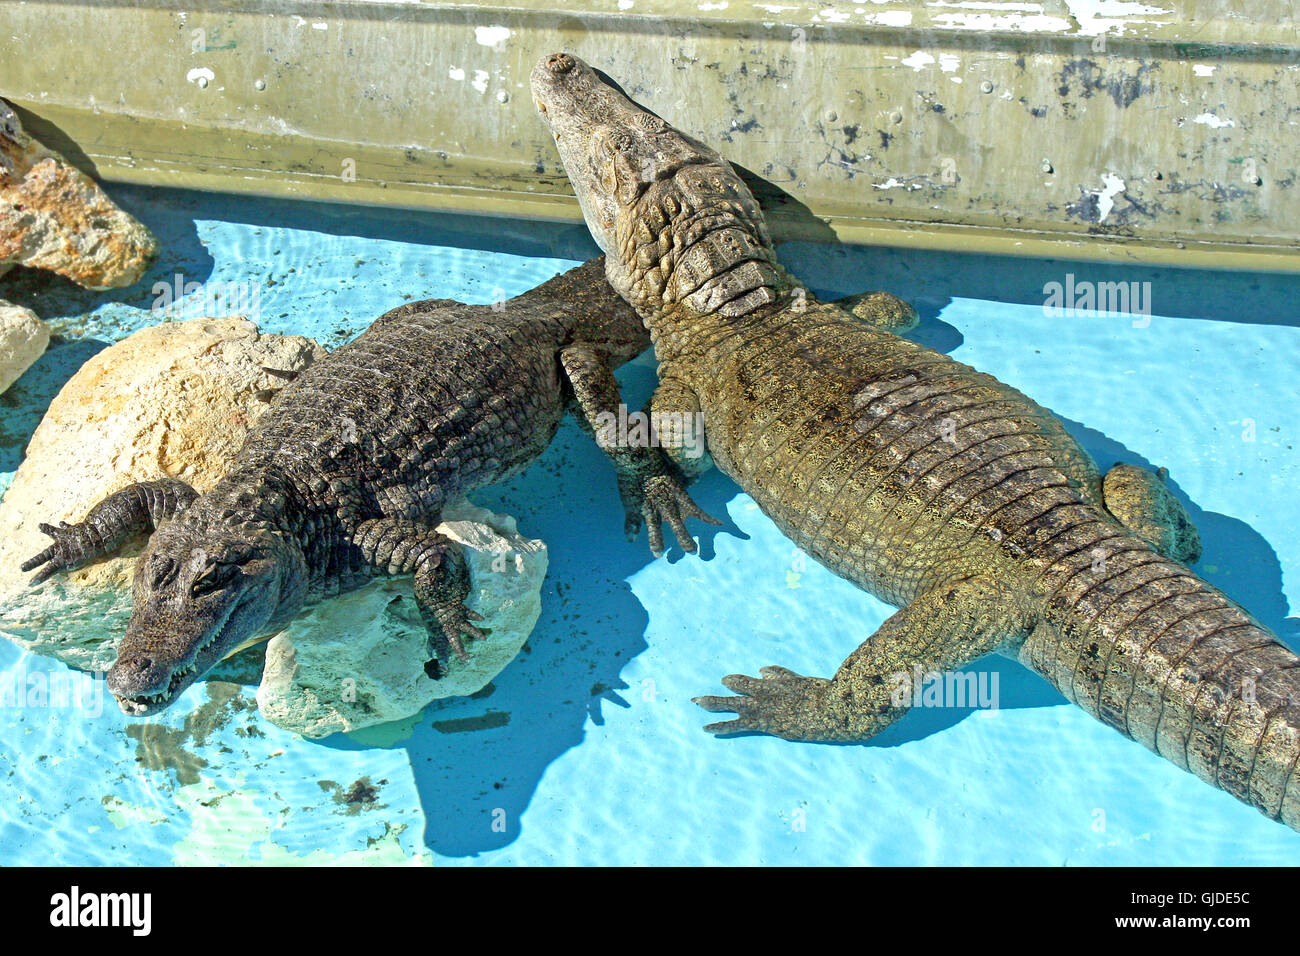 2 Alligators in an exhibit, water and rocks. - Stock Image